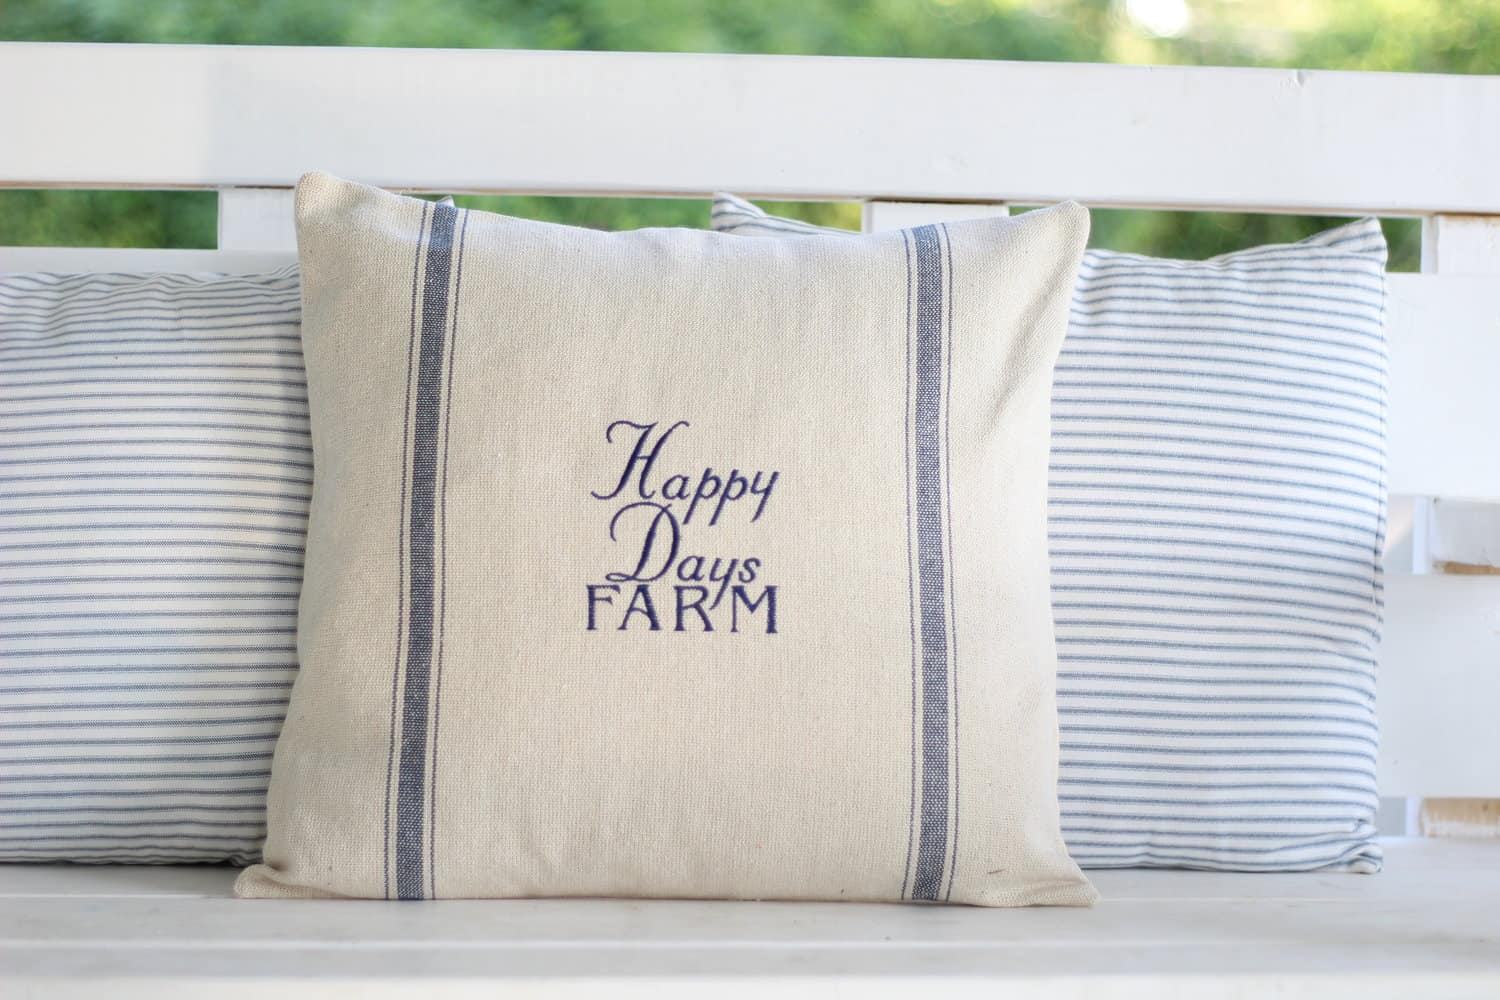 Customized Farm Name Grain Sack Pillow Cover Available In